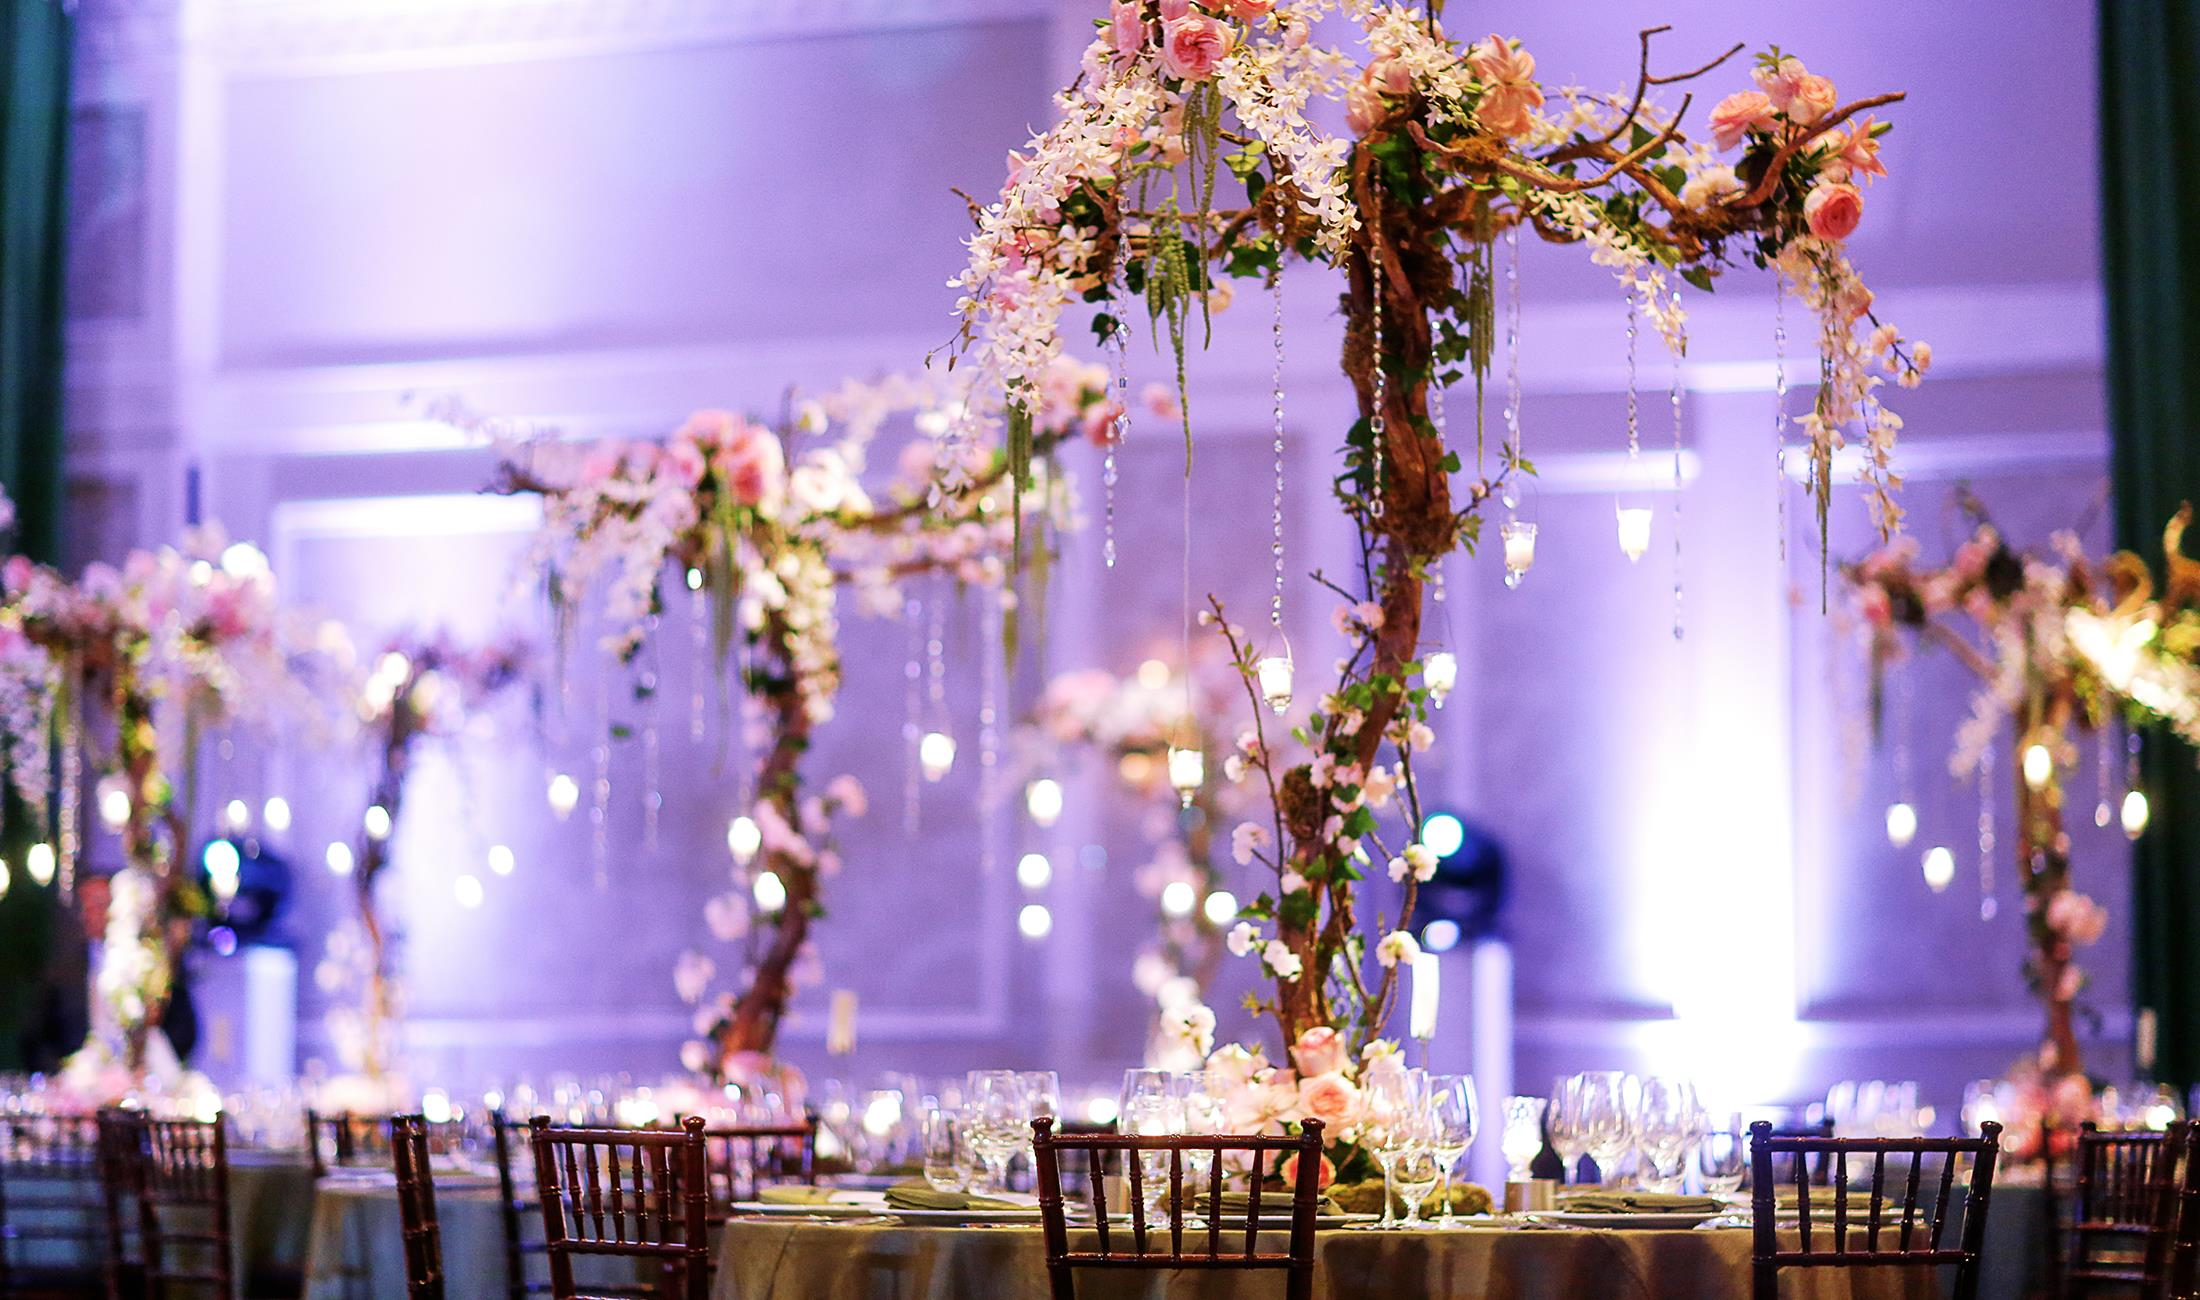 What are the major wedding decoration needed for your special day